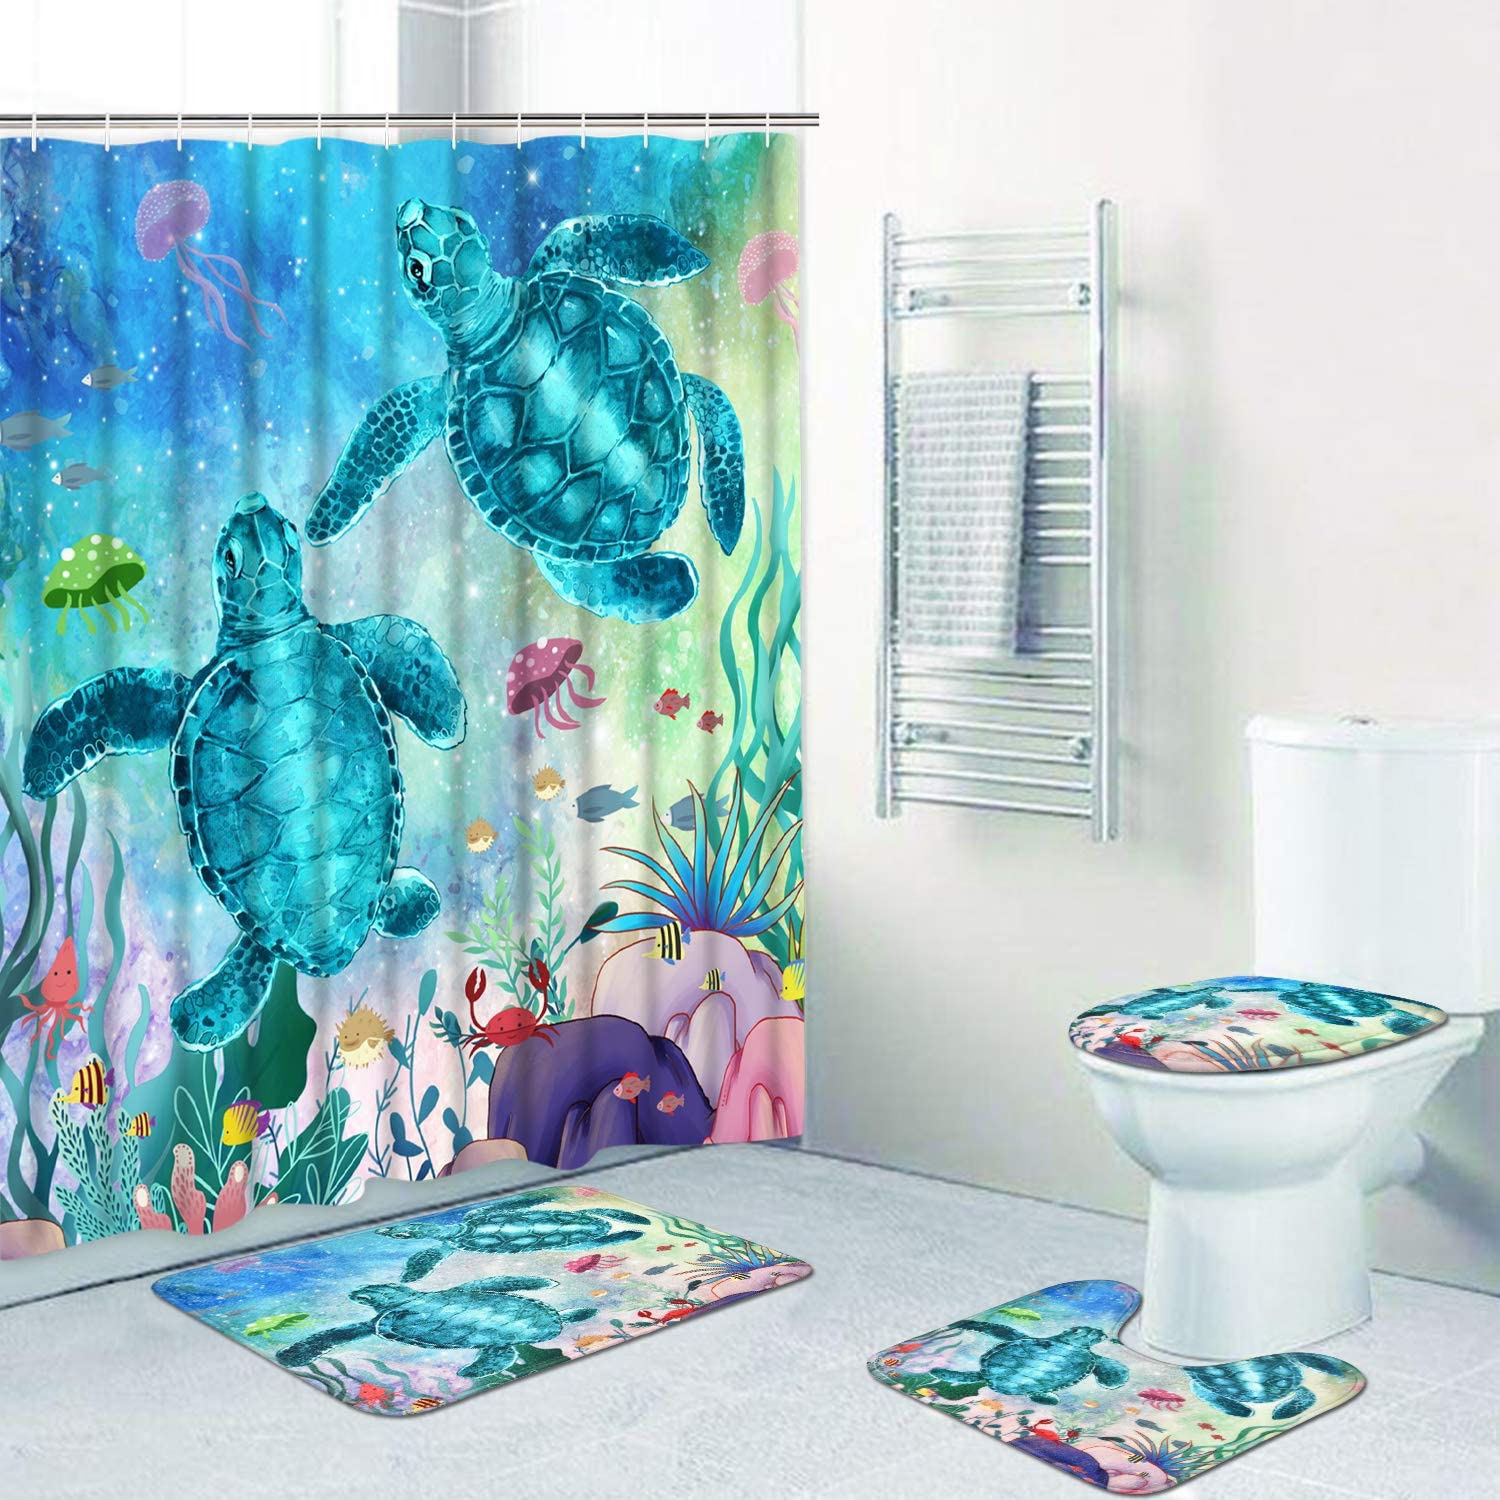 Alishomtll 4 Pcs Sea Turtle Shower Curtain Set with Non-Slip Rug, Toilet Lid Cover, Bath Mat and 12 Hooks, Ocean Creature Landscape Waterproof Shower Curtain Sets for Bathroom